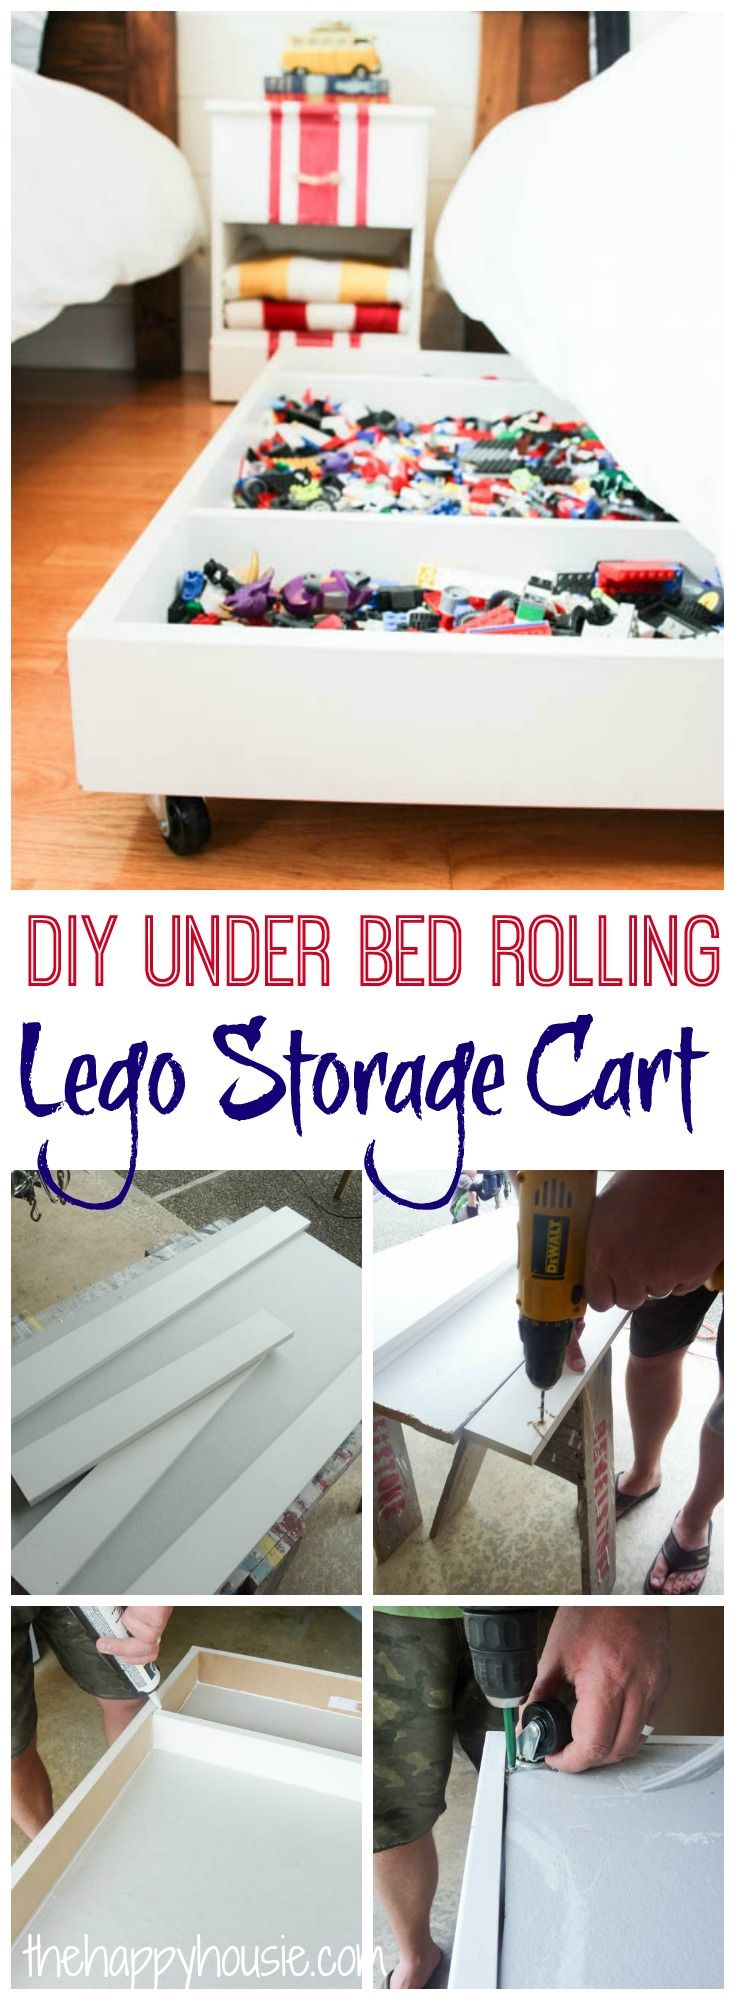 Tackle your lego storage issues with this DIY Under Bed Rolling Lego Storage Cart at thehappyhousie.com